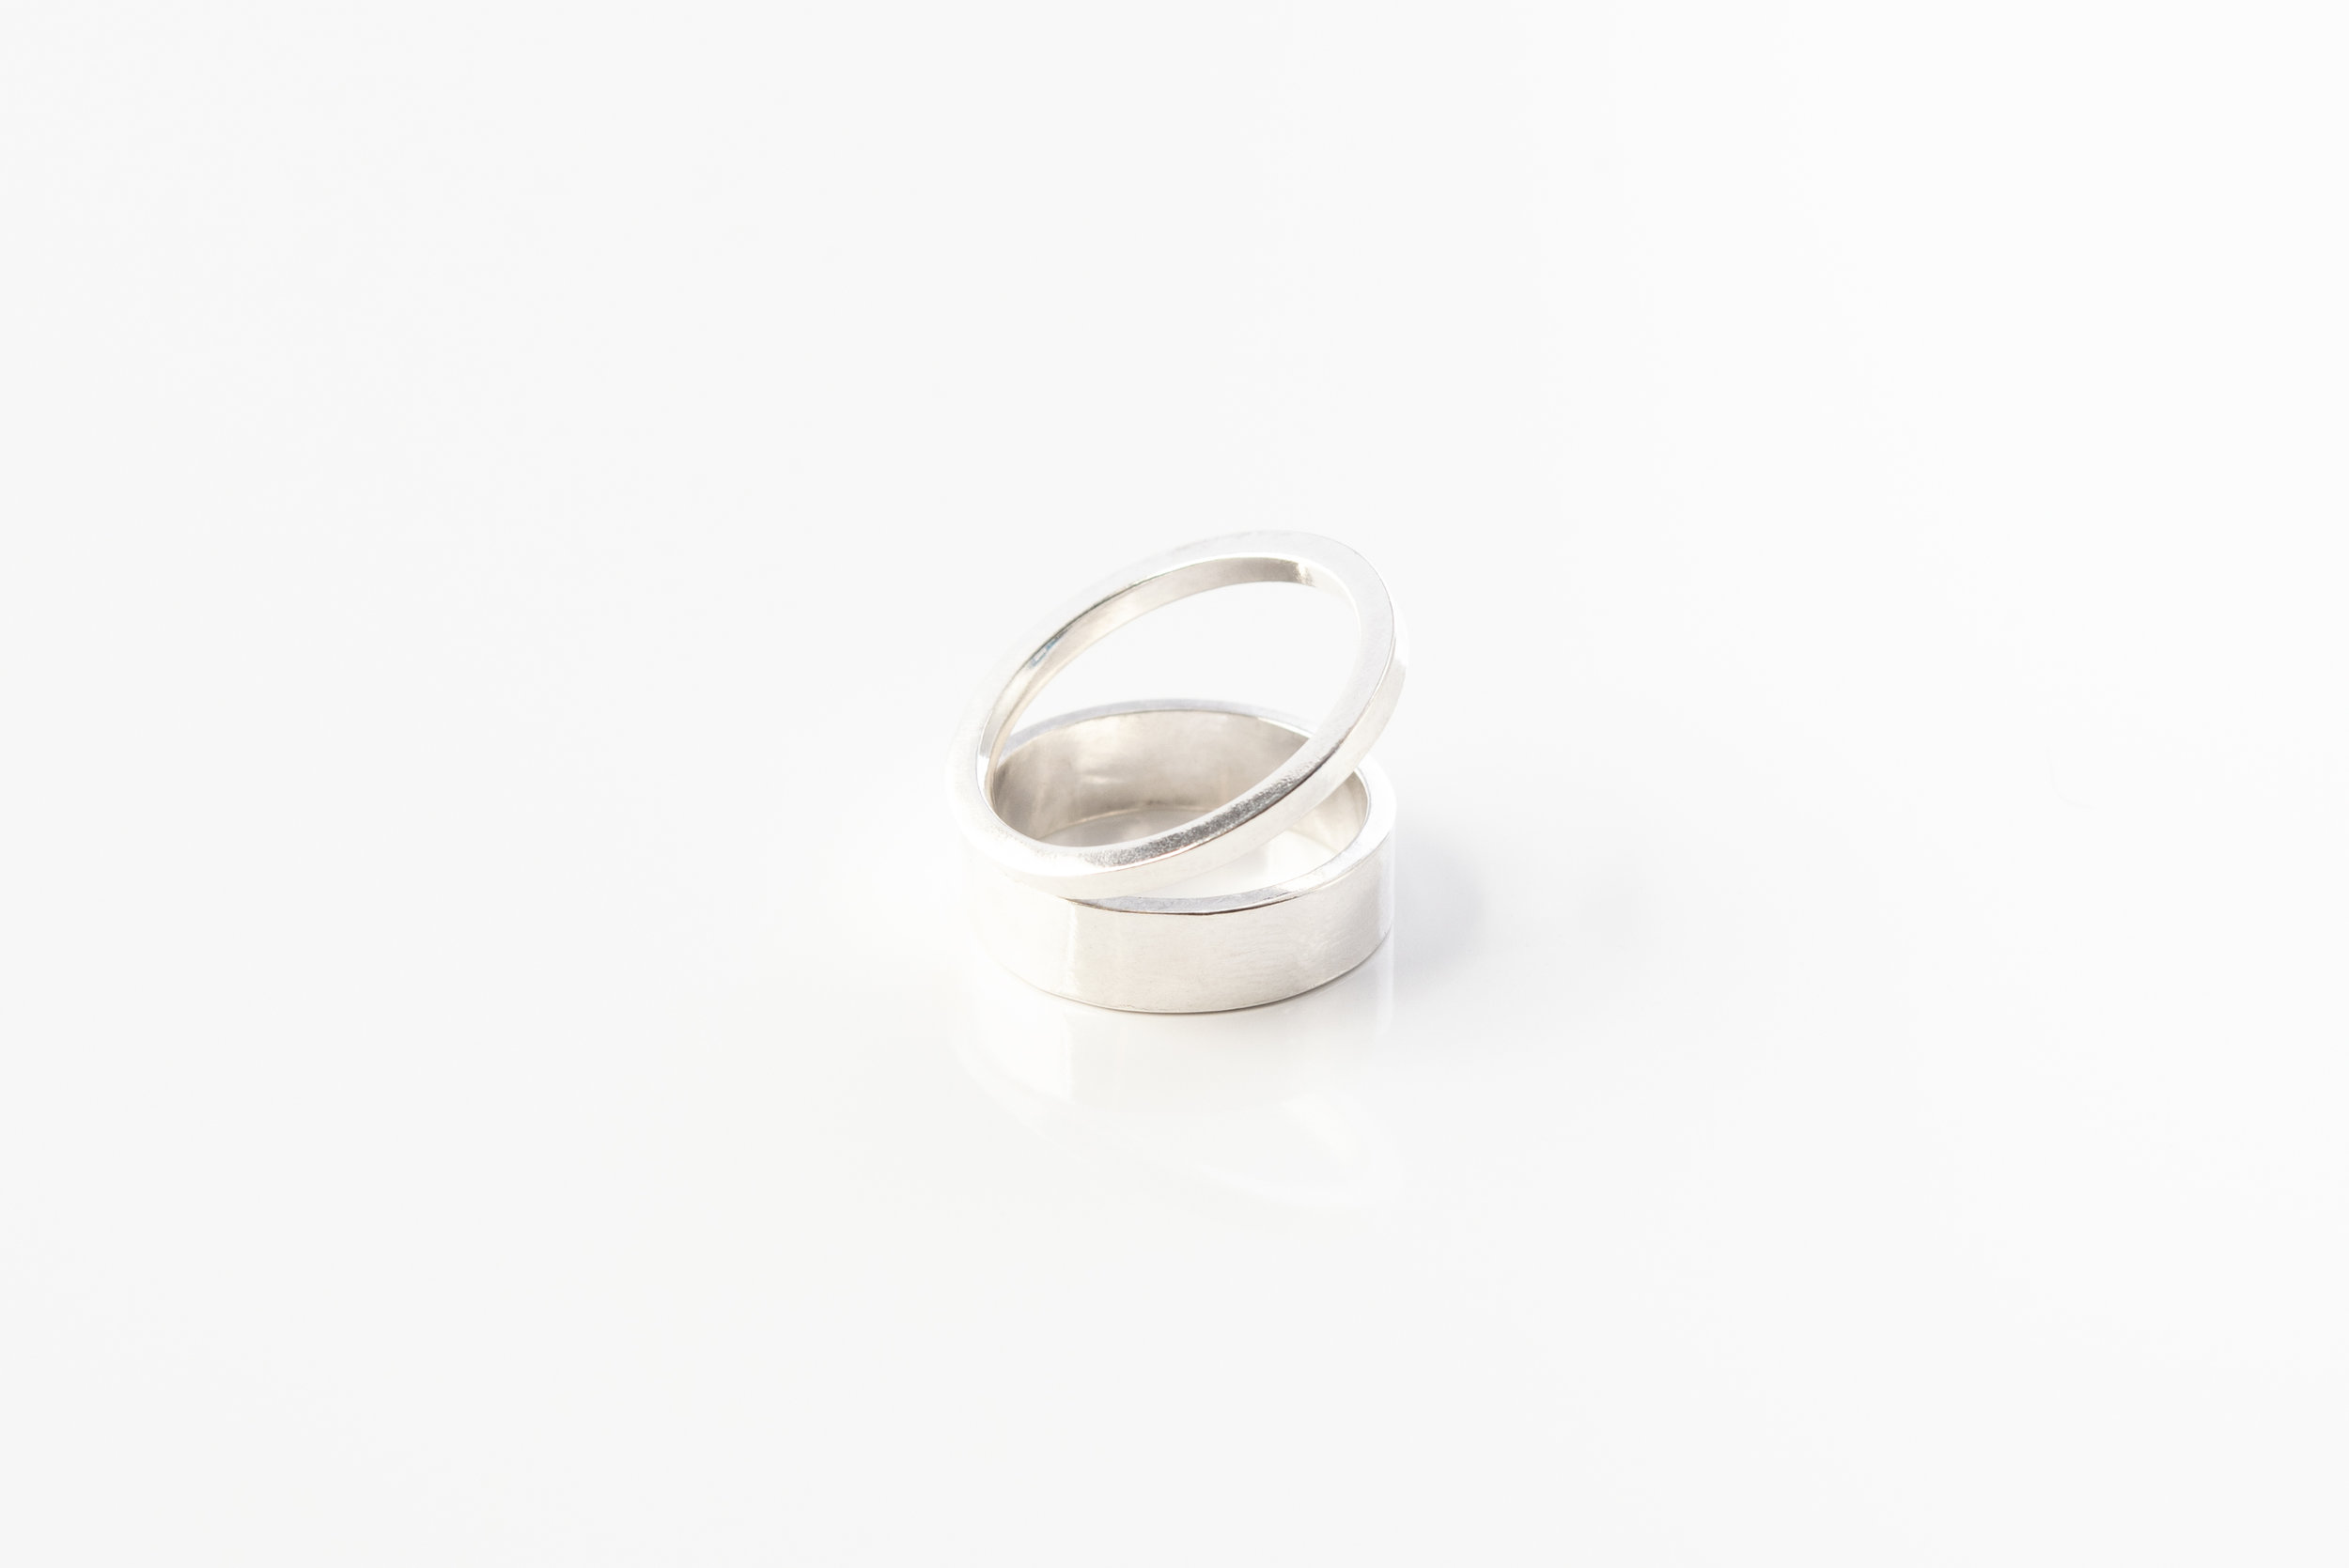 21_Ulterior_double band ring_9.jpg